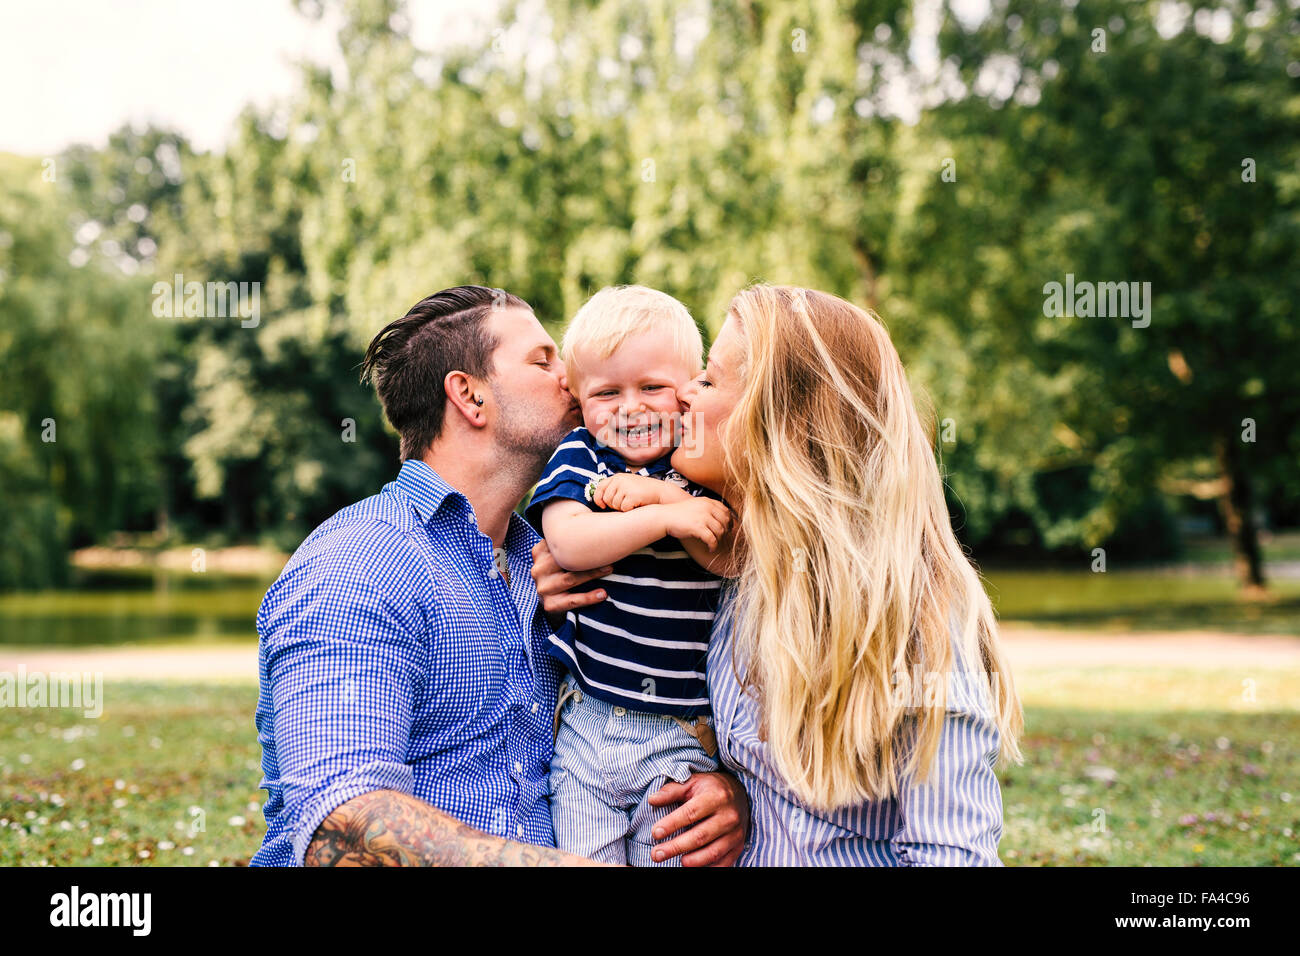 Parents kissing happy son - Stock Image